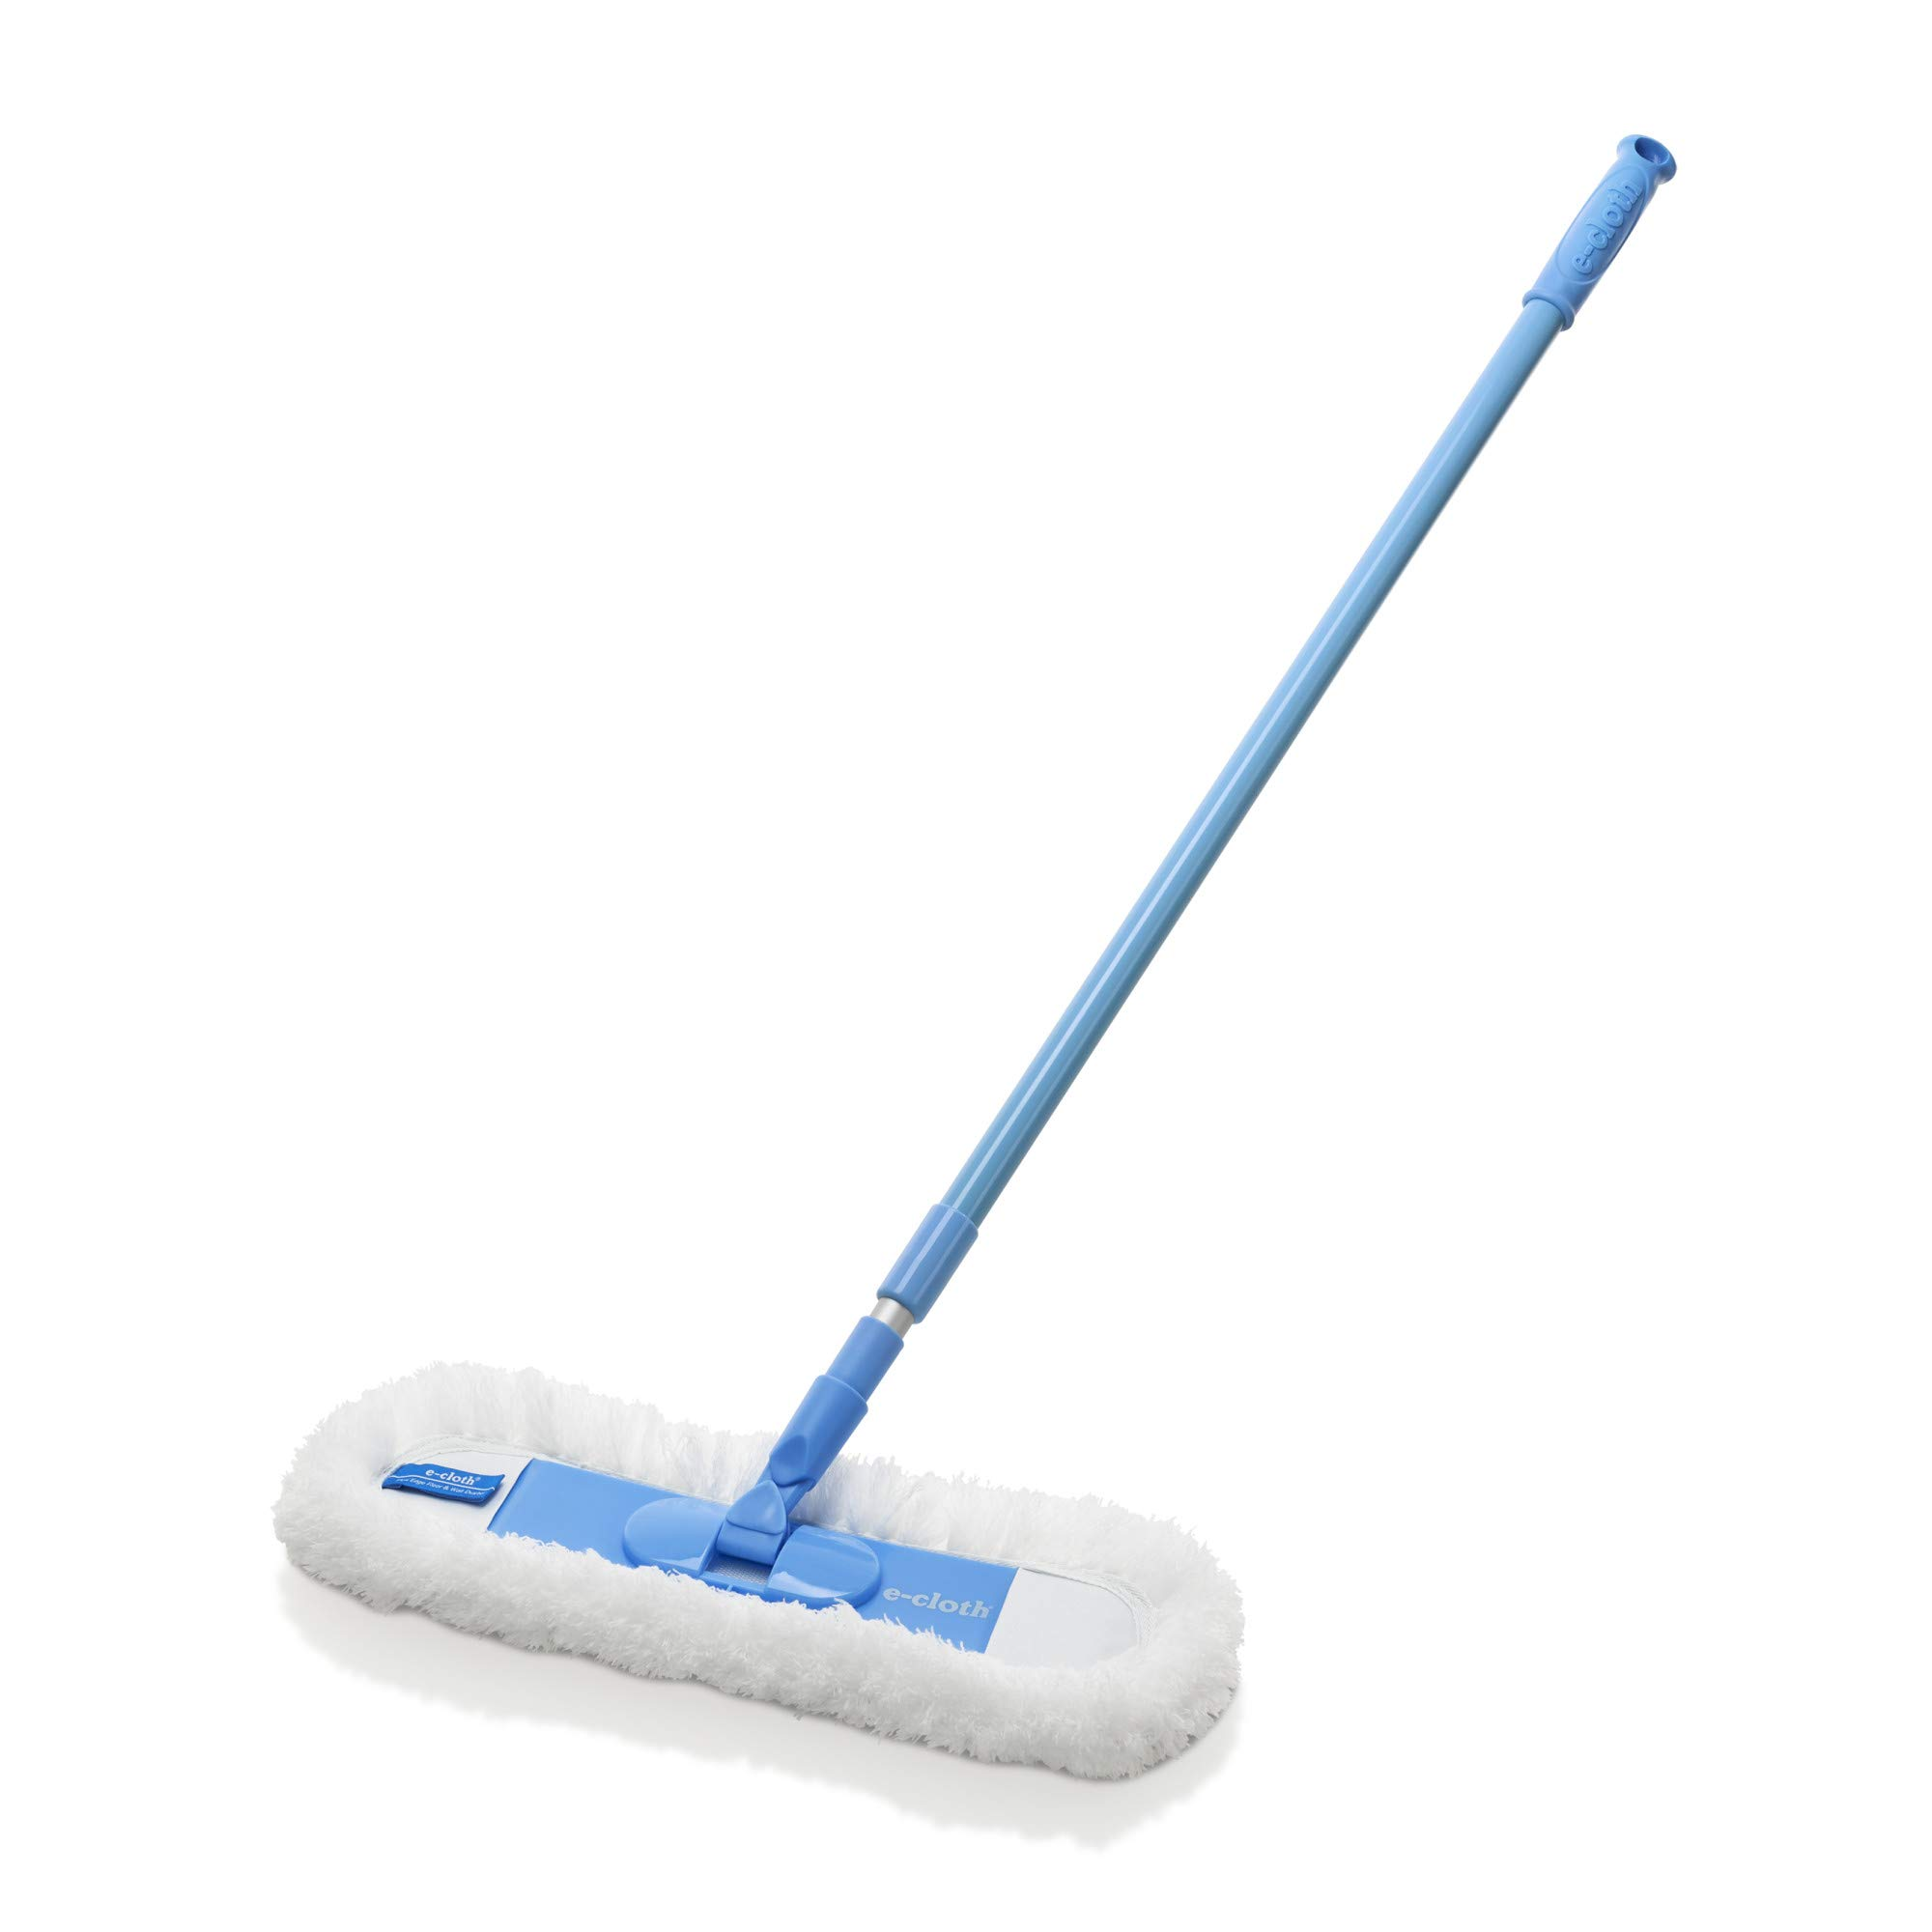 E-Cloth Flexi-Edge Floor & Wall Duster with Telescoping Handle by E-Cloth